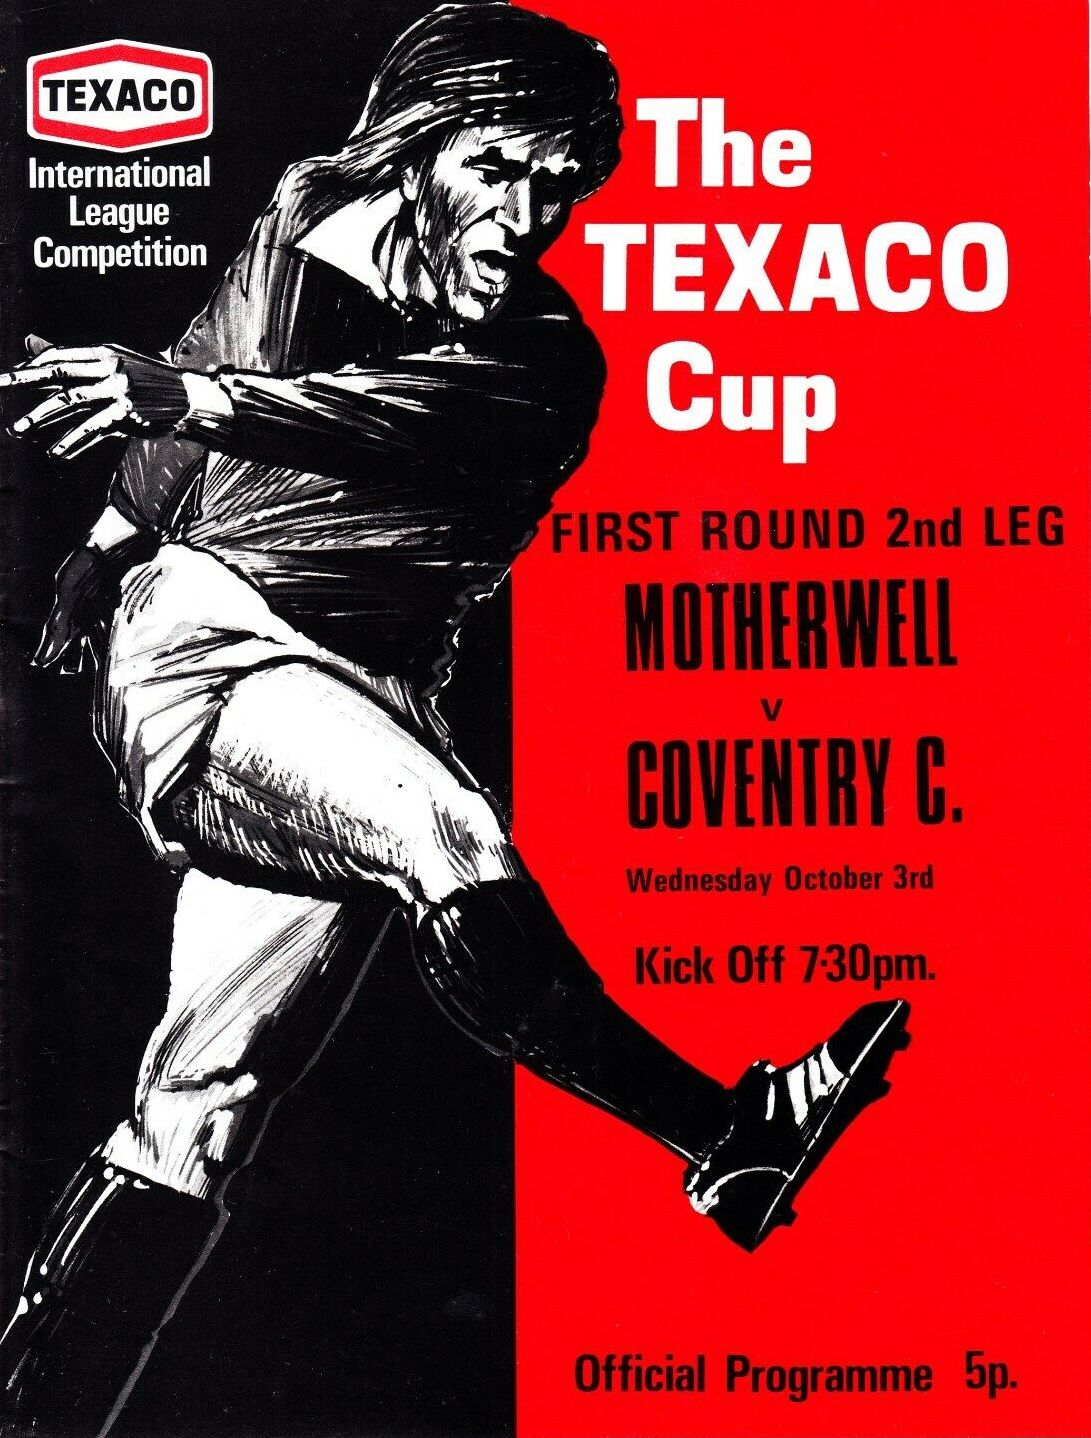 versus Coventry City Programme Cover